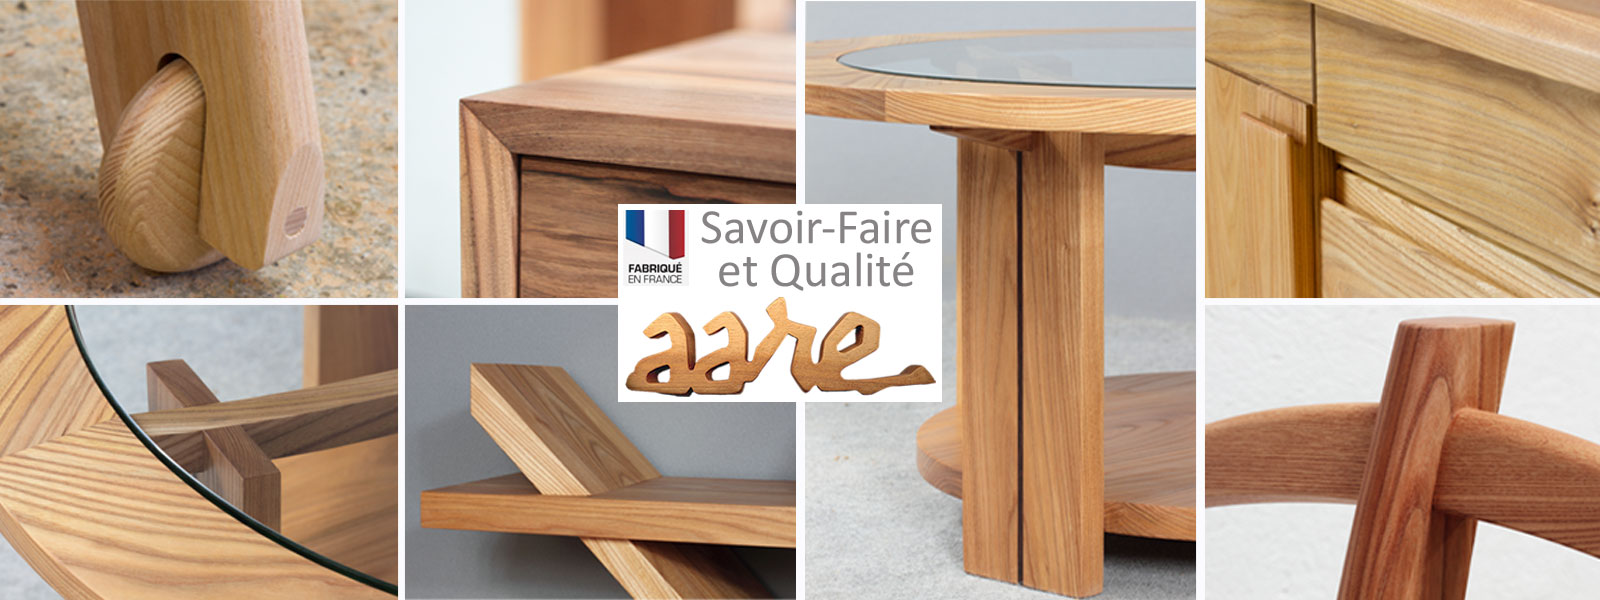 Meubles aare cr ateur fabricant de meubles contemporains for Createur meuble